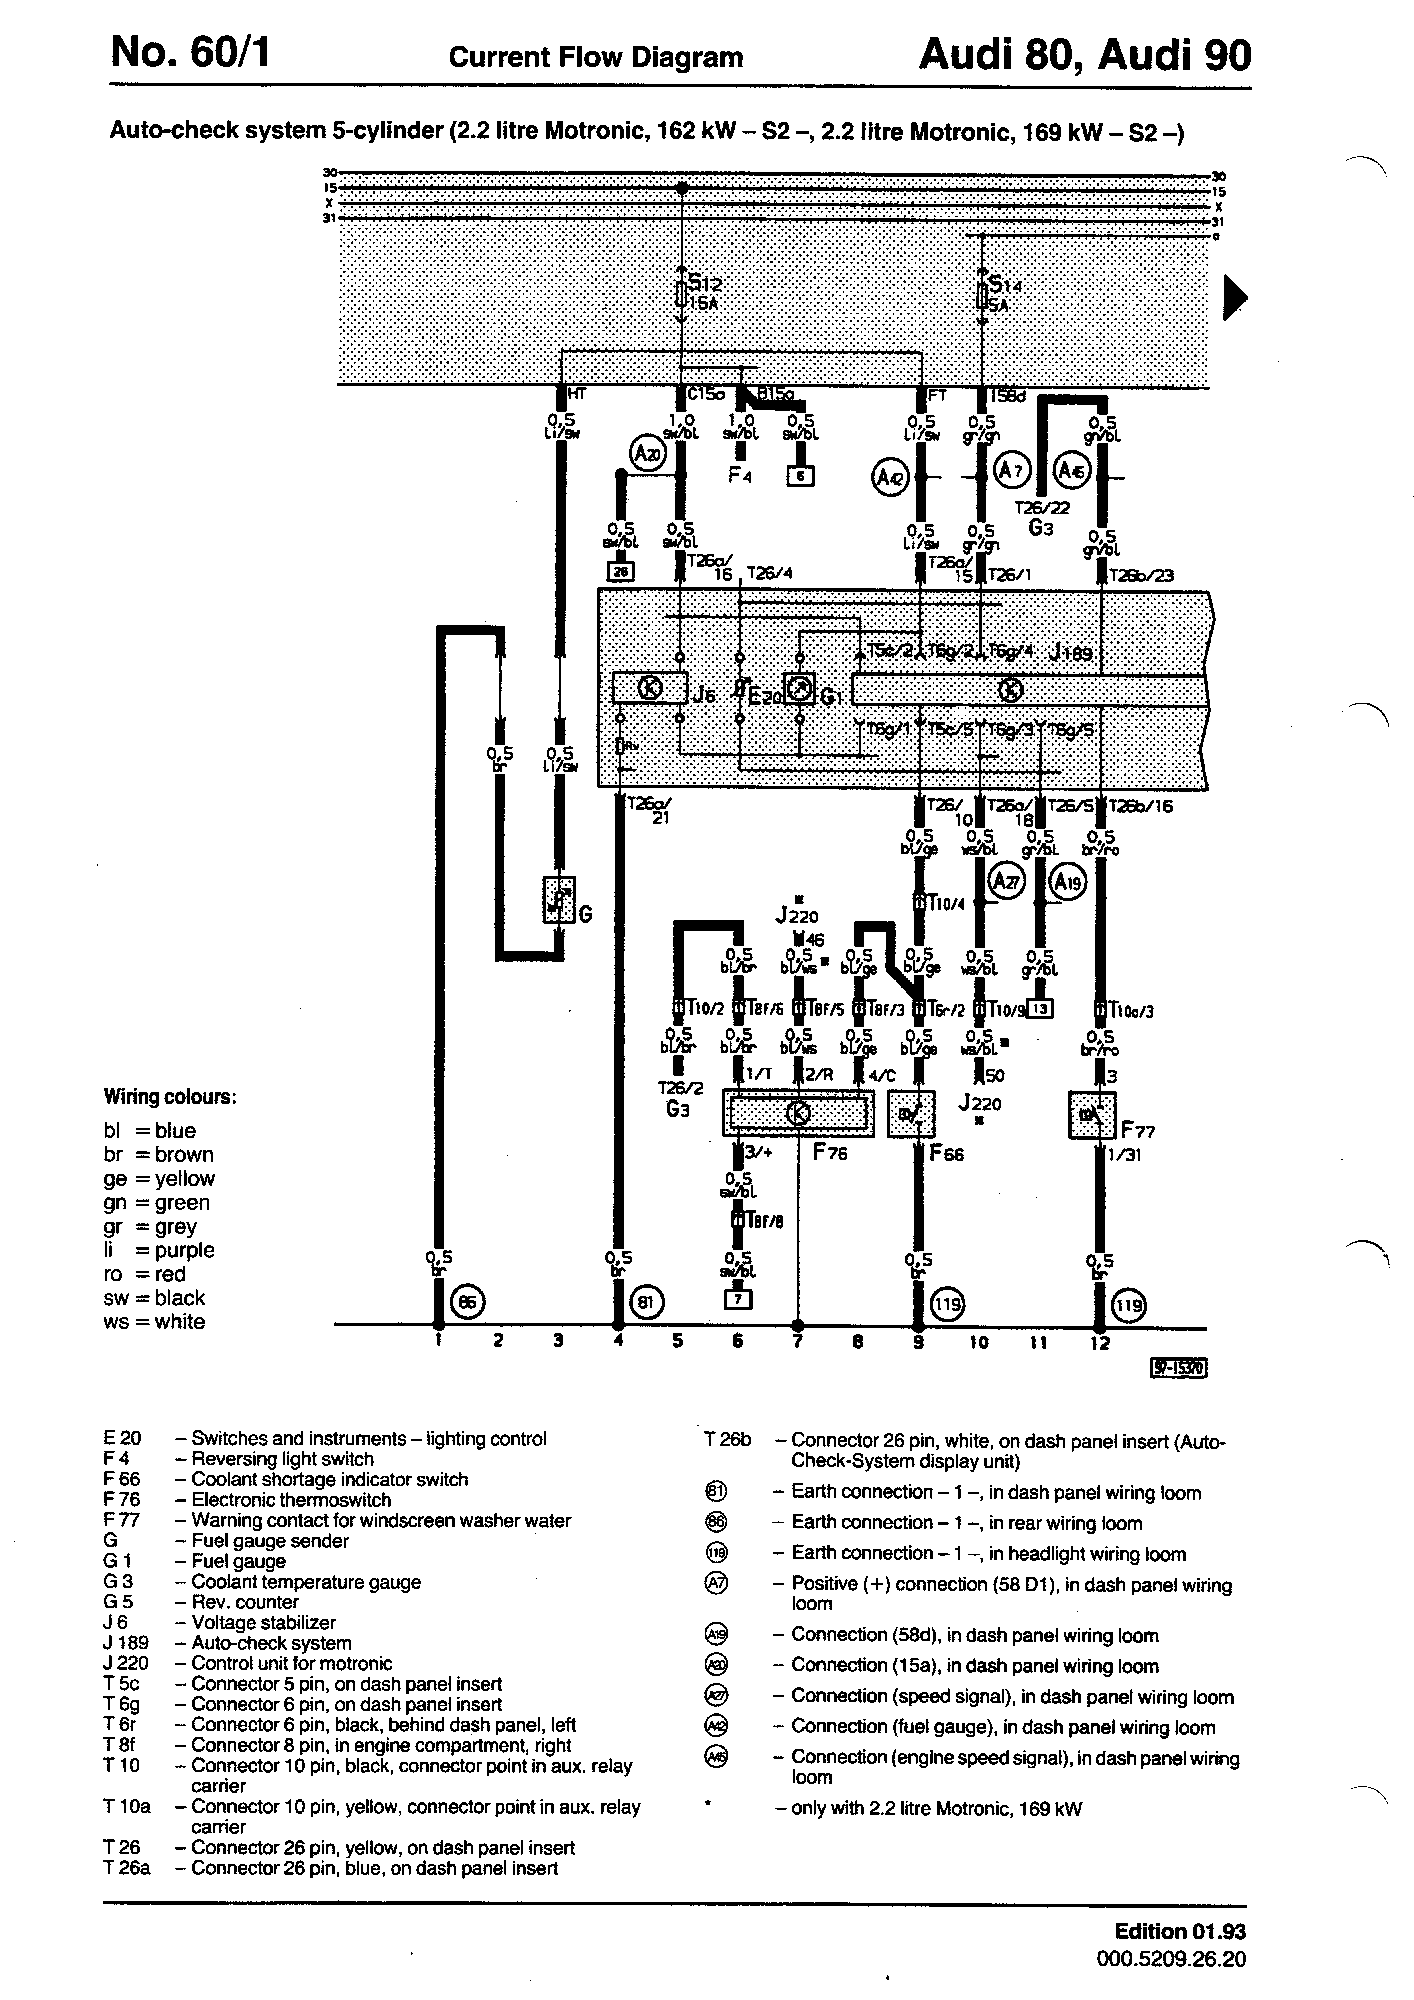 Wiring Diagrams Component Lookup Dual Radiator Fan Diagram Furthermore Electric Relay Switches And Instruments Lighting Control E20